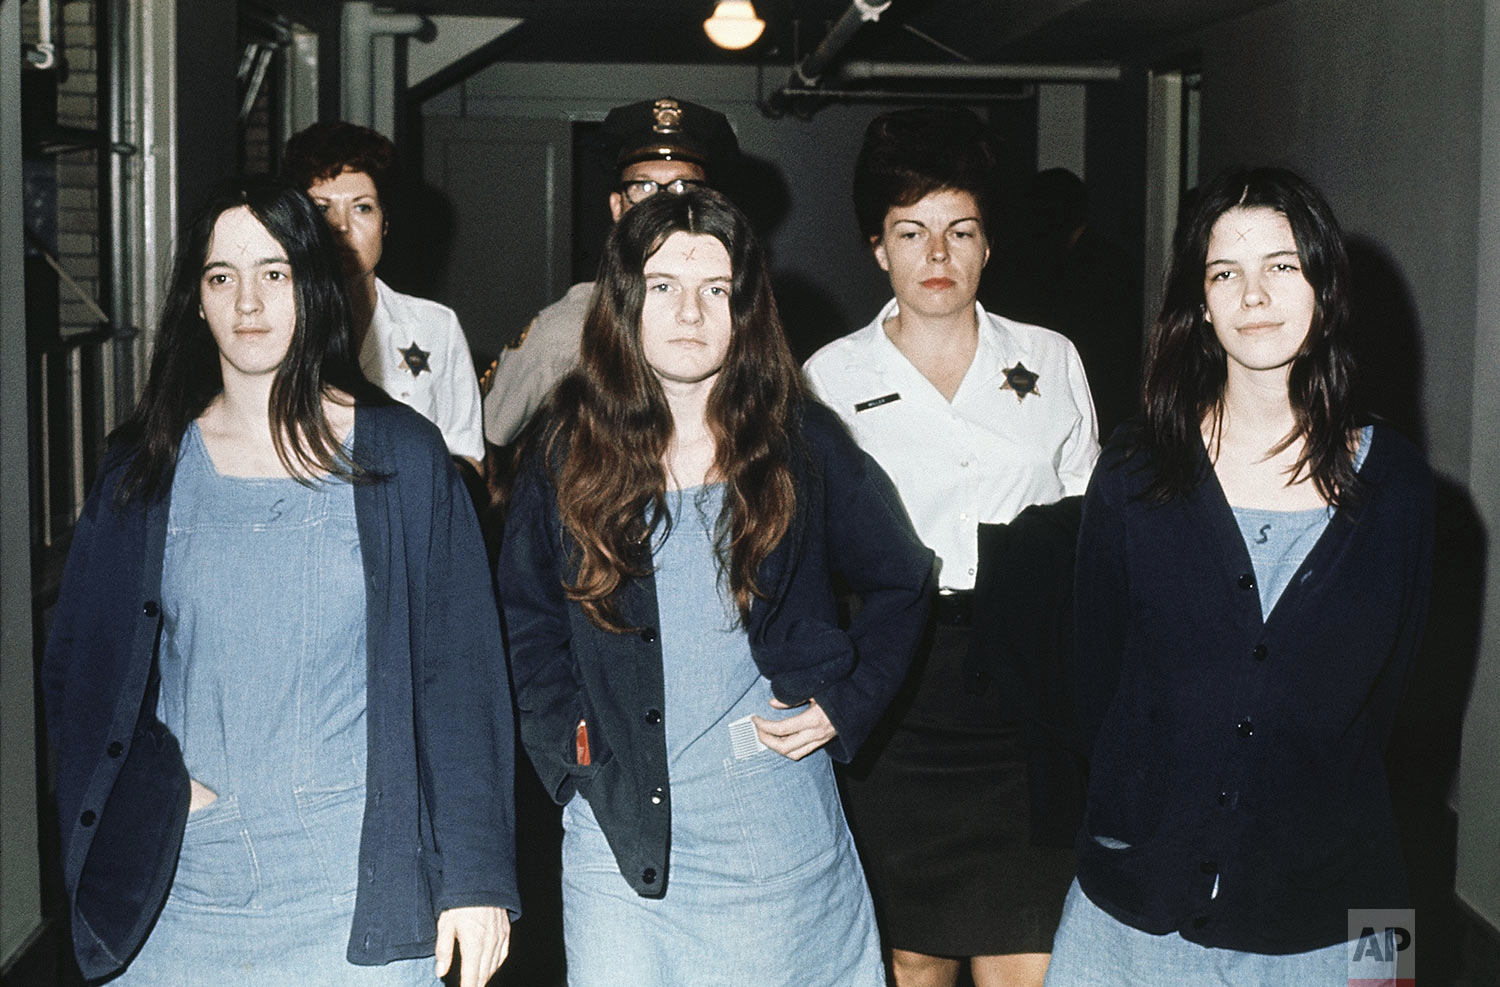 Three female defendants in the Manson court case are shown, from left to right: Susan Atkins, Patricia Krenwinkel, Leslie Van Houten, March 29 , 1971 as they return to court to hear the penalty ending a nine-month trial in the Tate-LaBianca murders of August 1969. All three, plus Charles Manson, were decreed the death sentence in the gas chamber. (AP Photo)